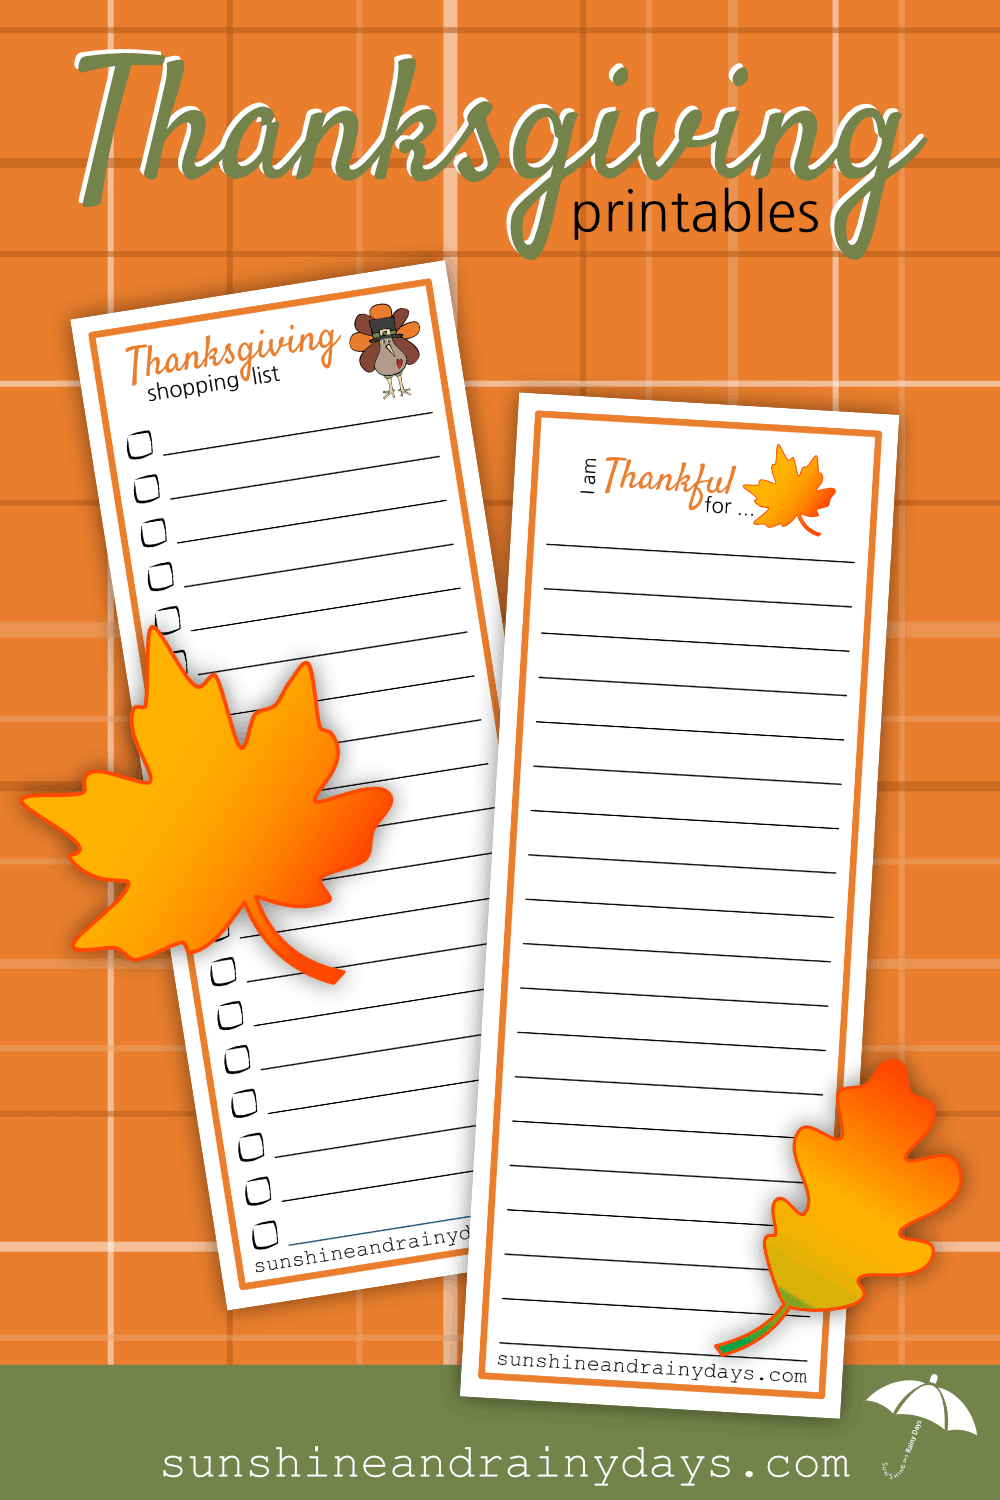 Whether you're hosting Thanksgiving or not, you likely need to do a little Thanksgiving shopping! Our Thanksgiving Shopping List Printable is here to encourage you to get it down on paper! Thanksgiving Printables | Thanksgiving Shopping List | Thanksgiving Thankful List | #Thanksgiving #ThanksgivingPrintables #Printables #SARD